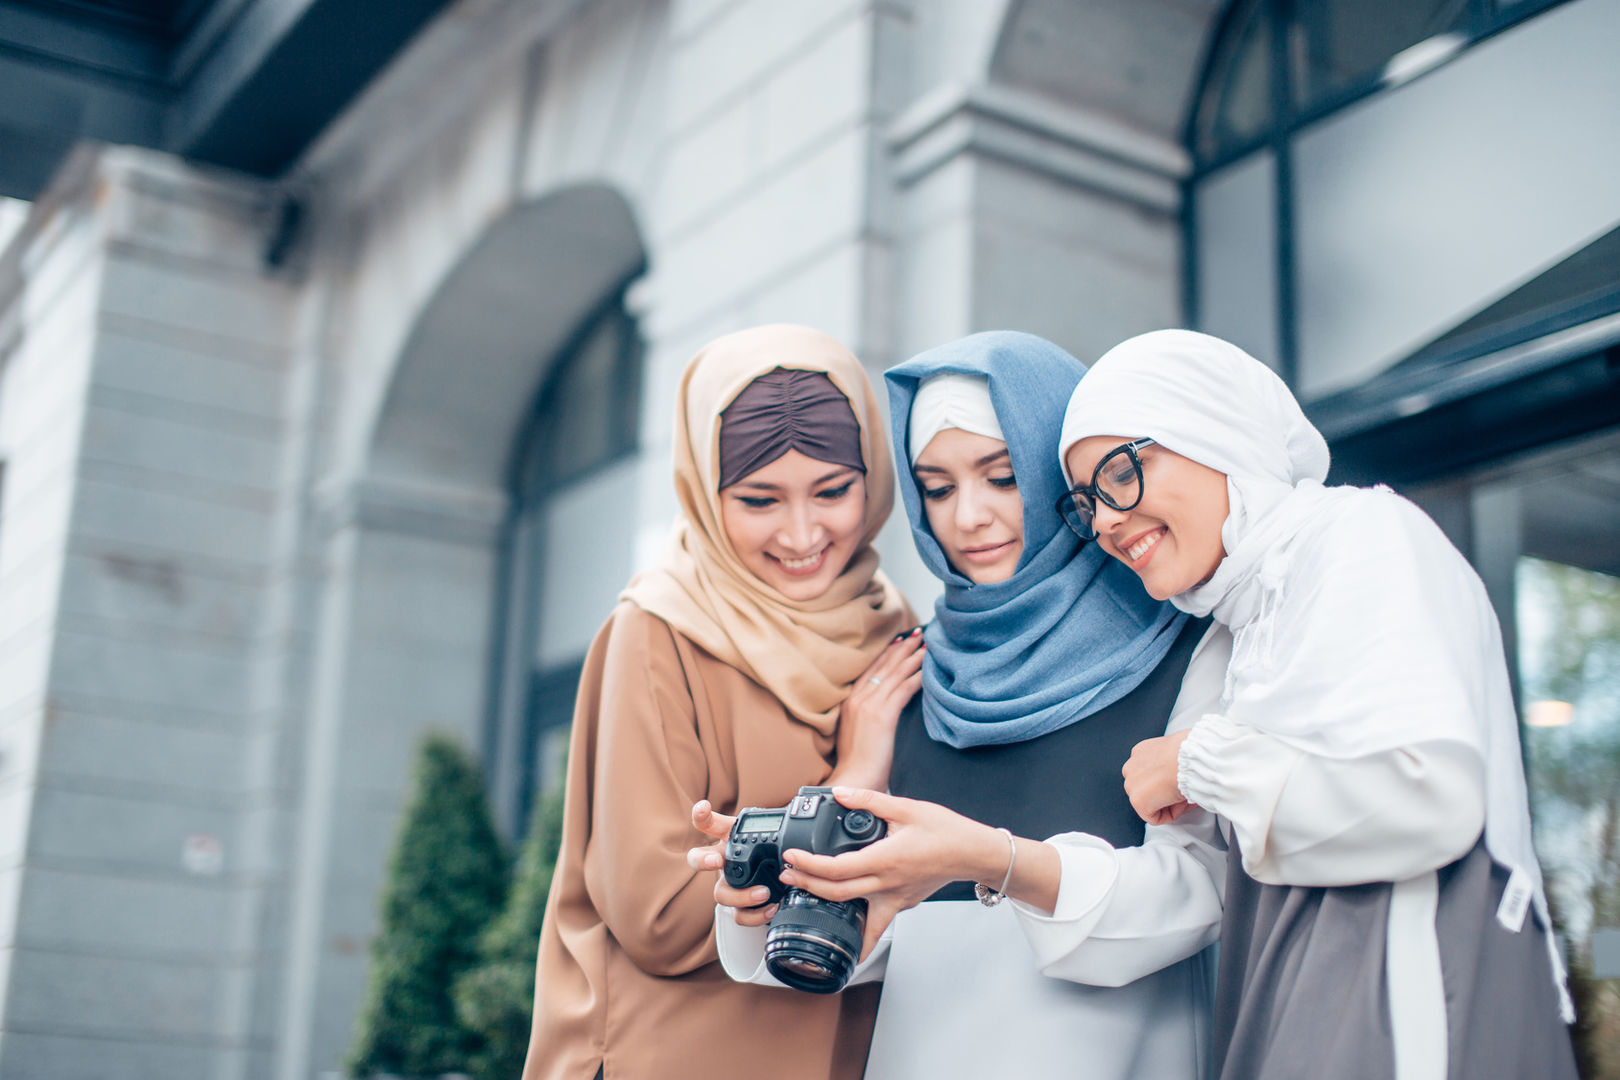 Hijab Fashion Redefined with Modern Look and Style